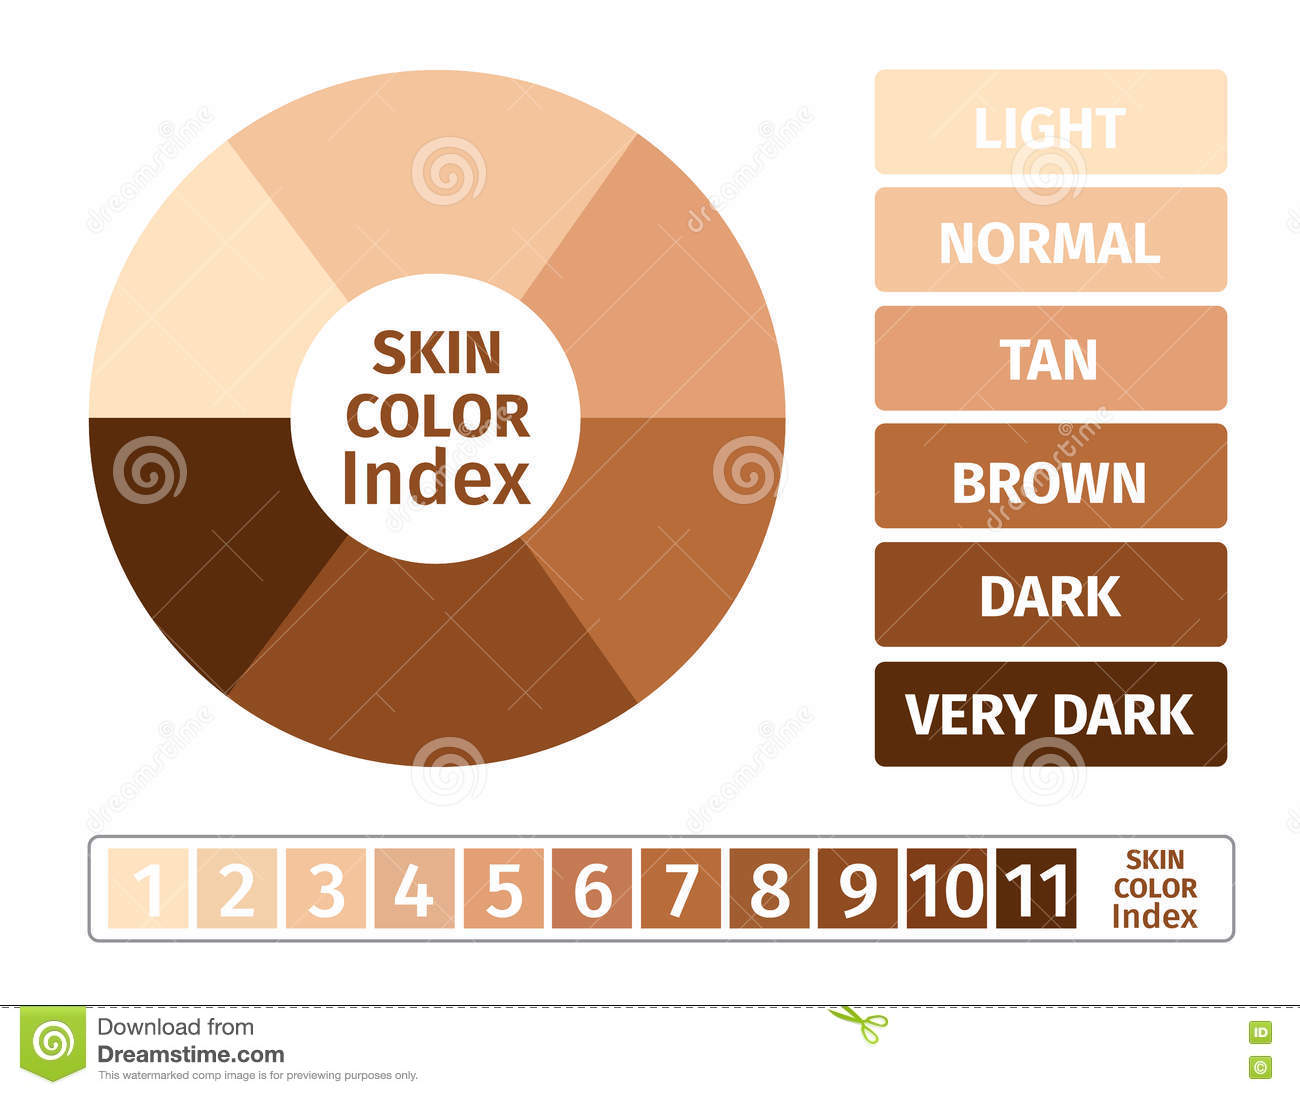 Skin color index infographic 3 chart of skin stock illustration skin color index infographic 3 chart of skin nvjuhfo Gallery